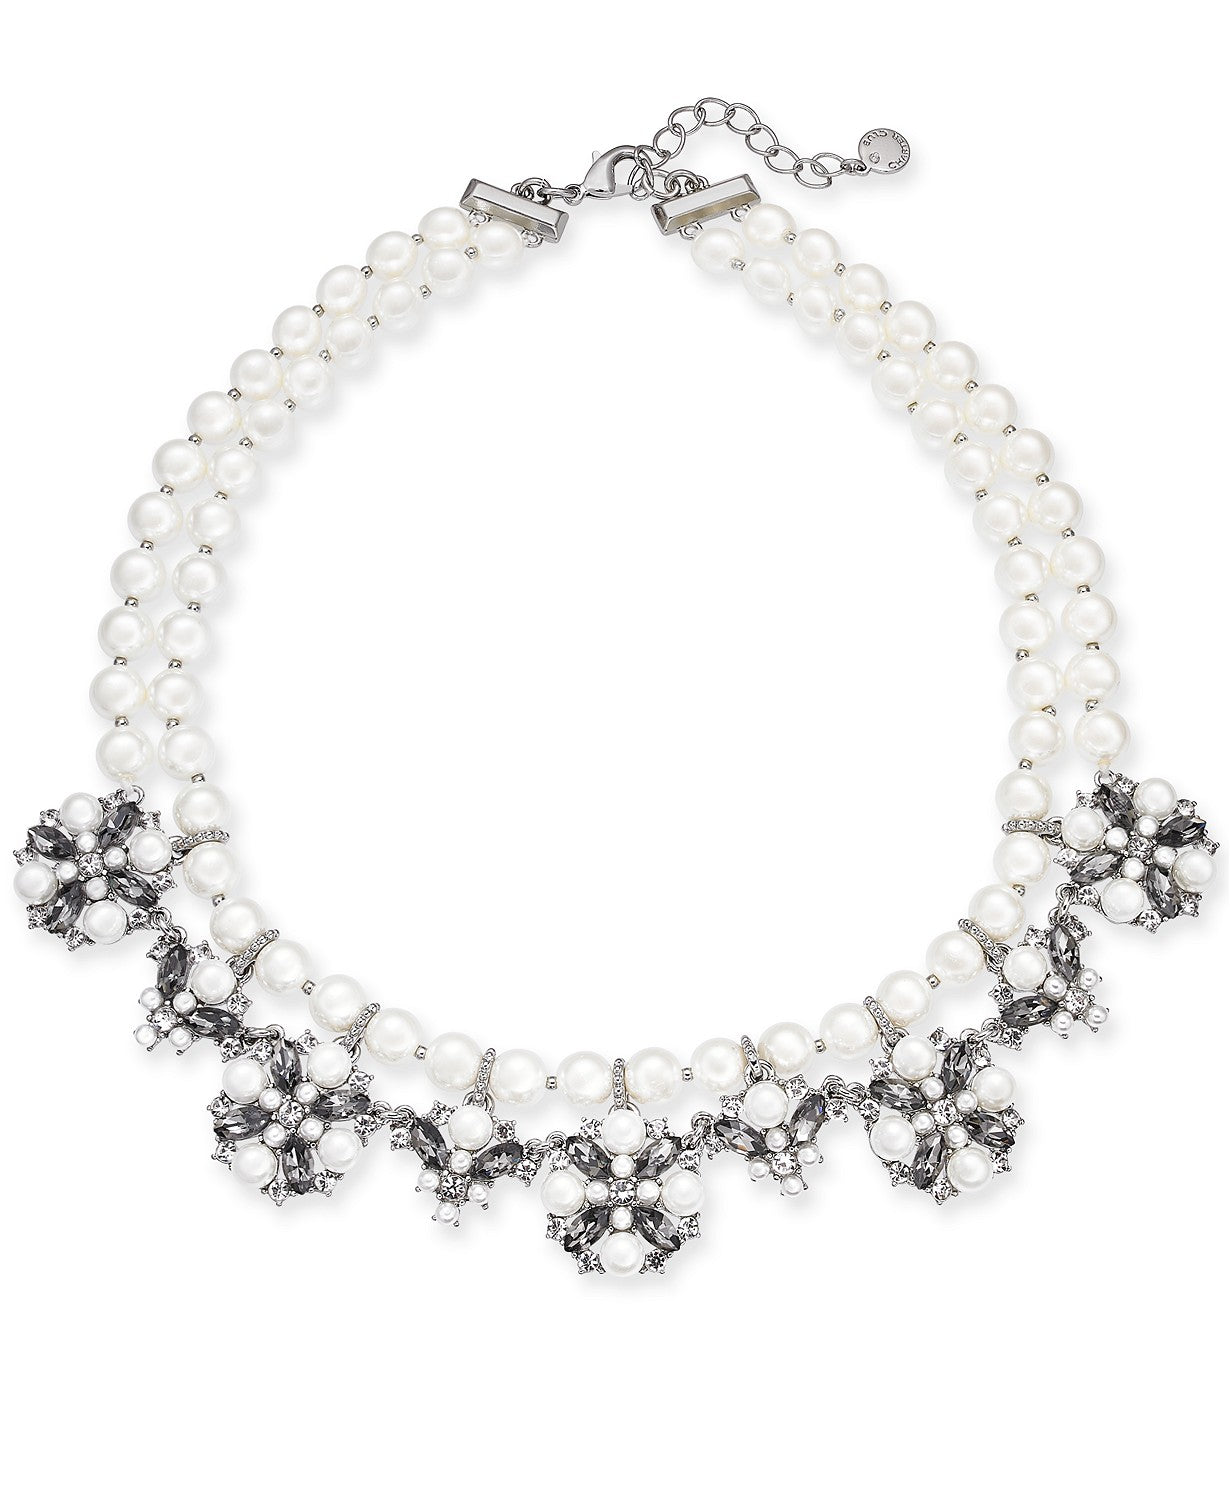 Charter Club Silver-Tone Imitation Pearl, Crystal & Stone Double Row Collar Necklace, 17 + 2 Extender